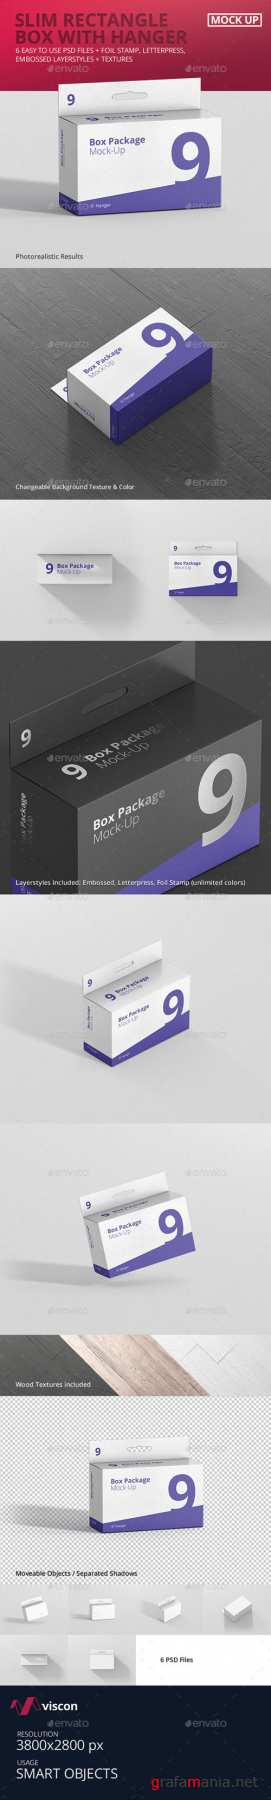 Package Box Mockup - Slim Rectangle with Hanger 18841669